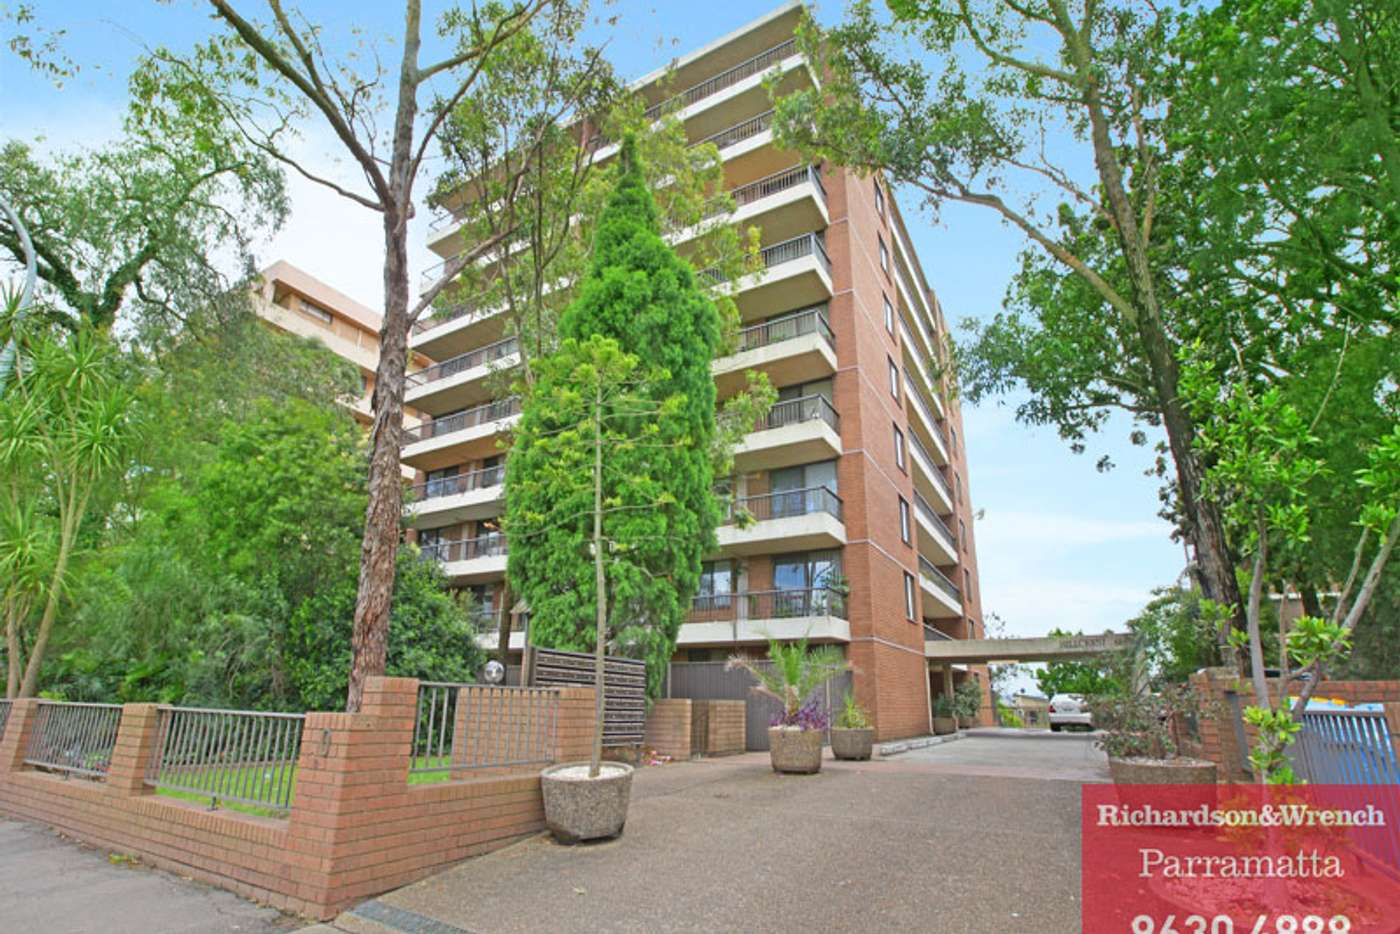 Main view of Homely apartment listing, 5/68-70 Great Western Highway, Parramatta NSW 2150